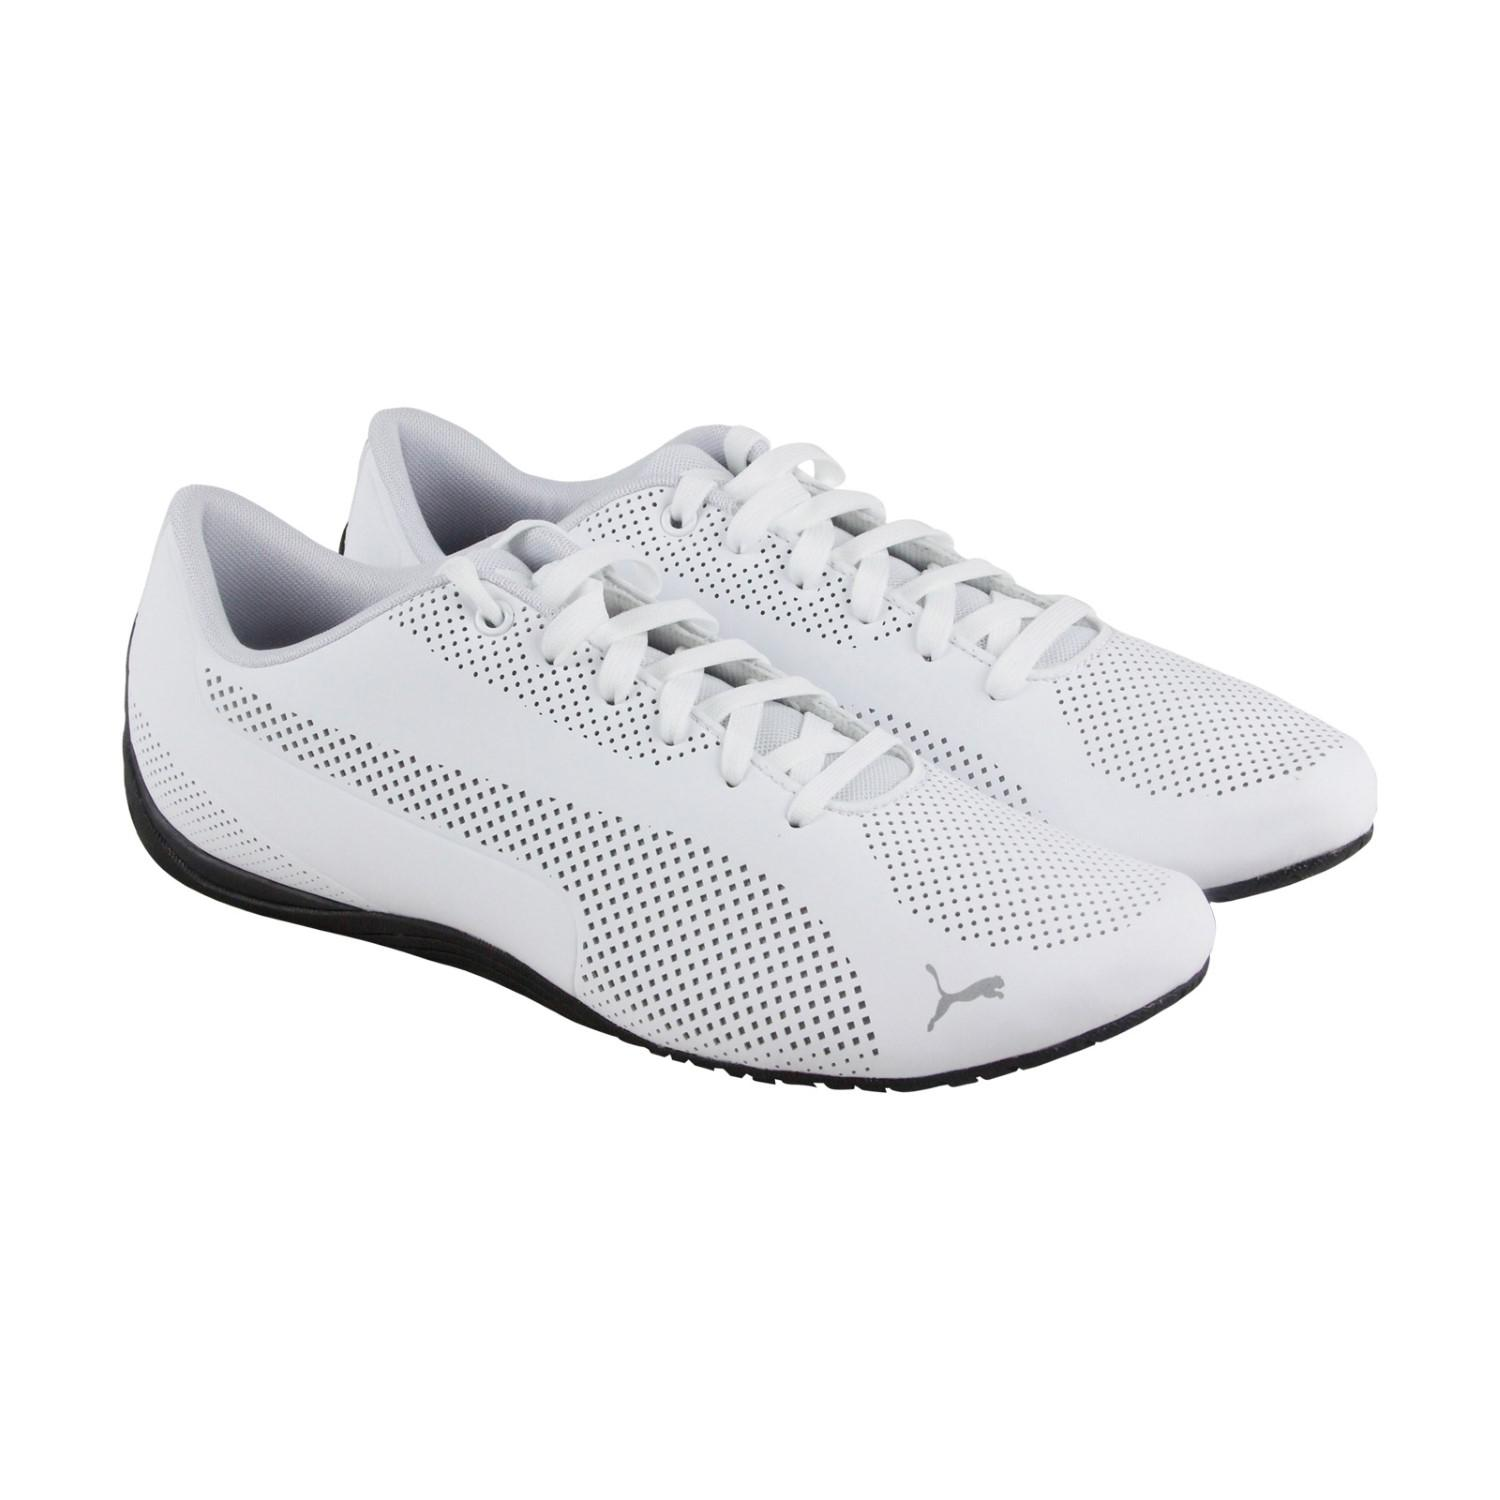 29304db076d131 Lyst - PUMA Drift Cat Ultra Reflective White Black Mens Lace Up ...